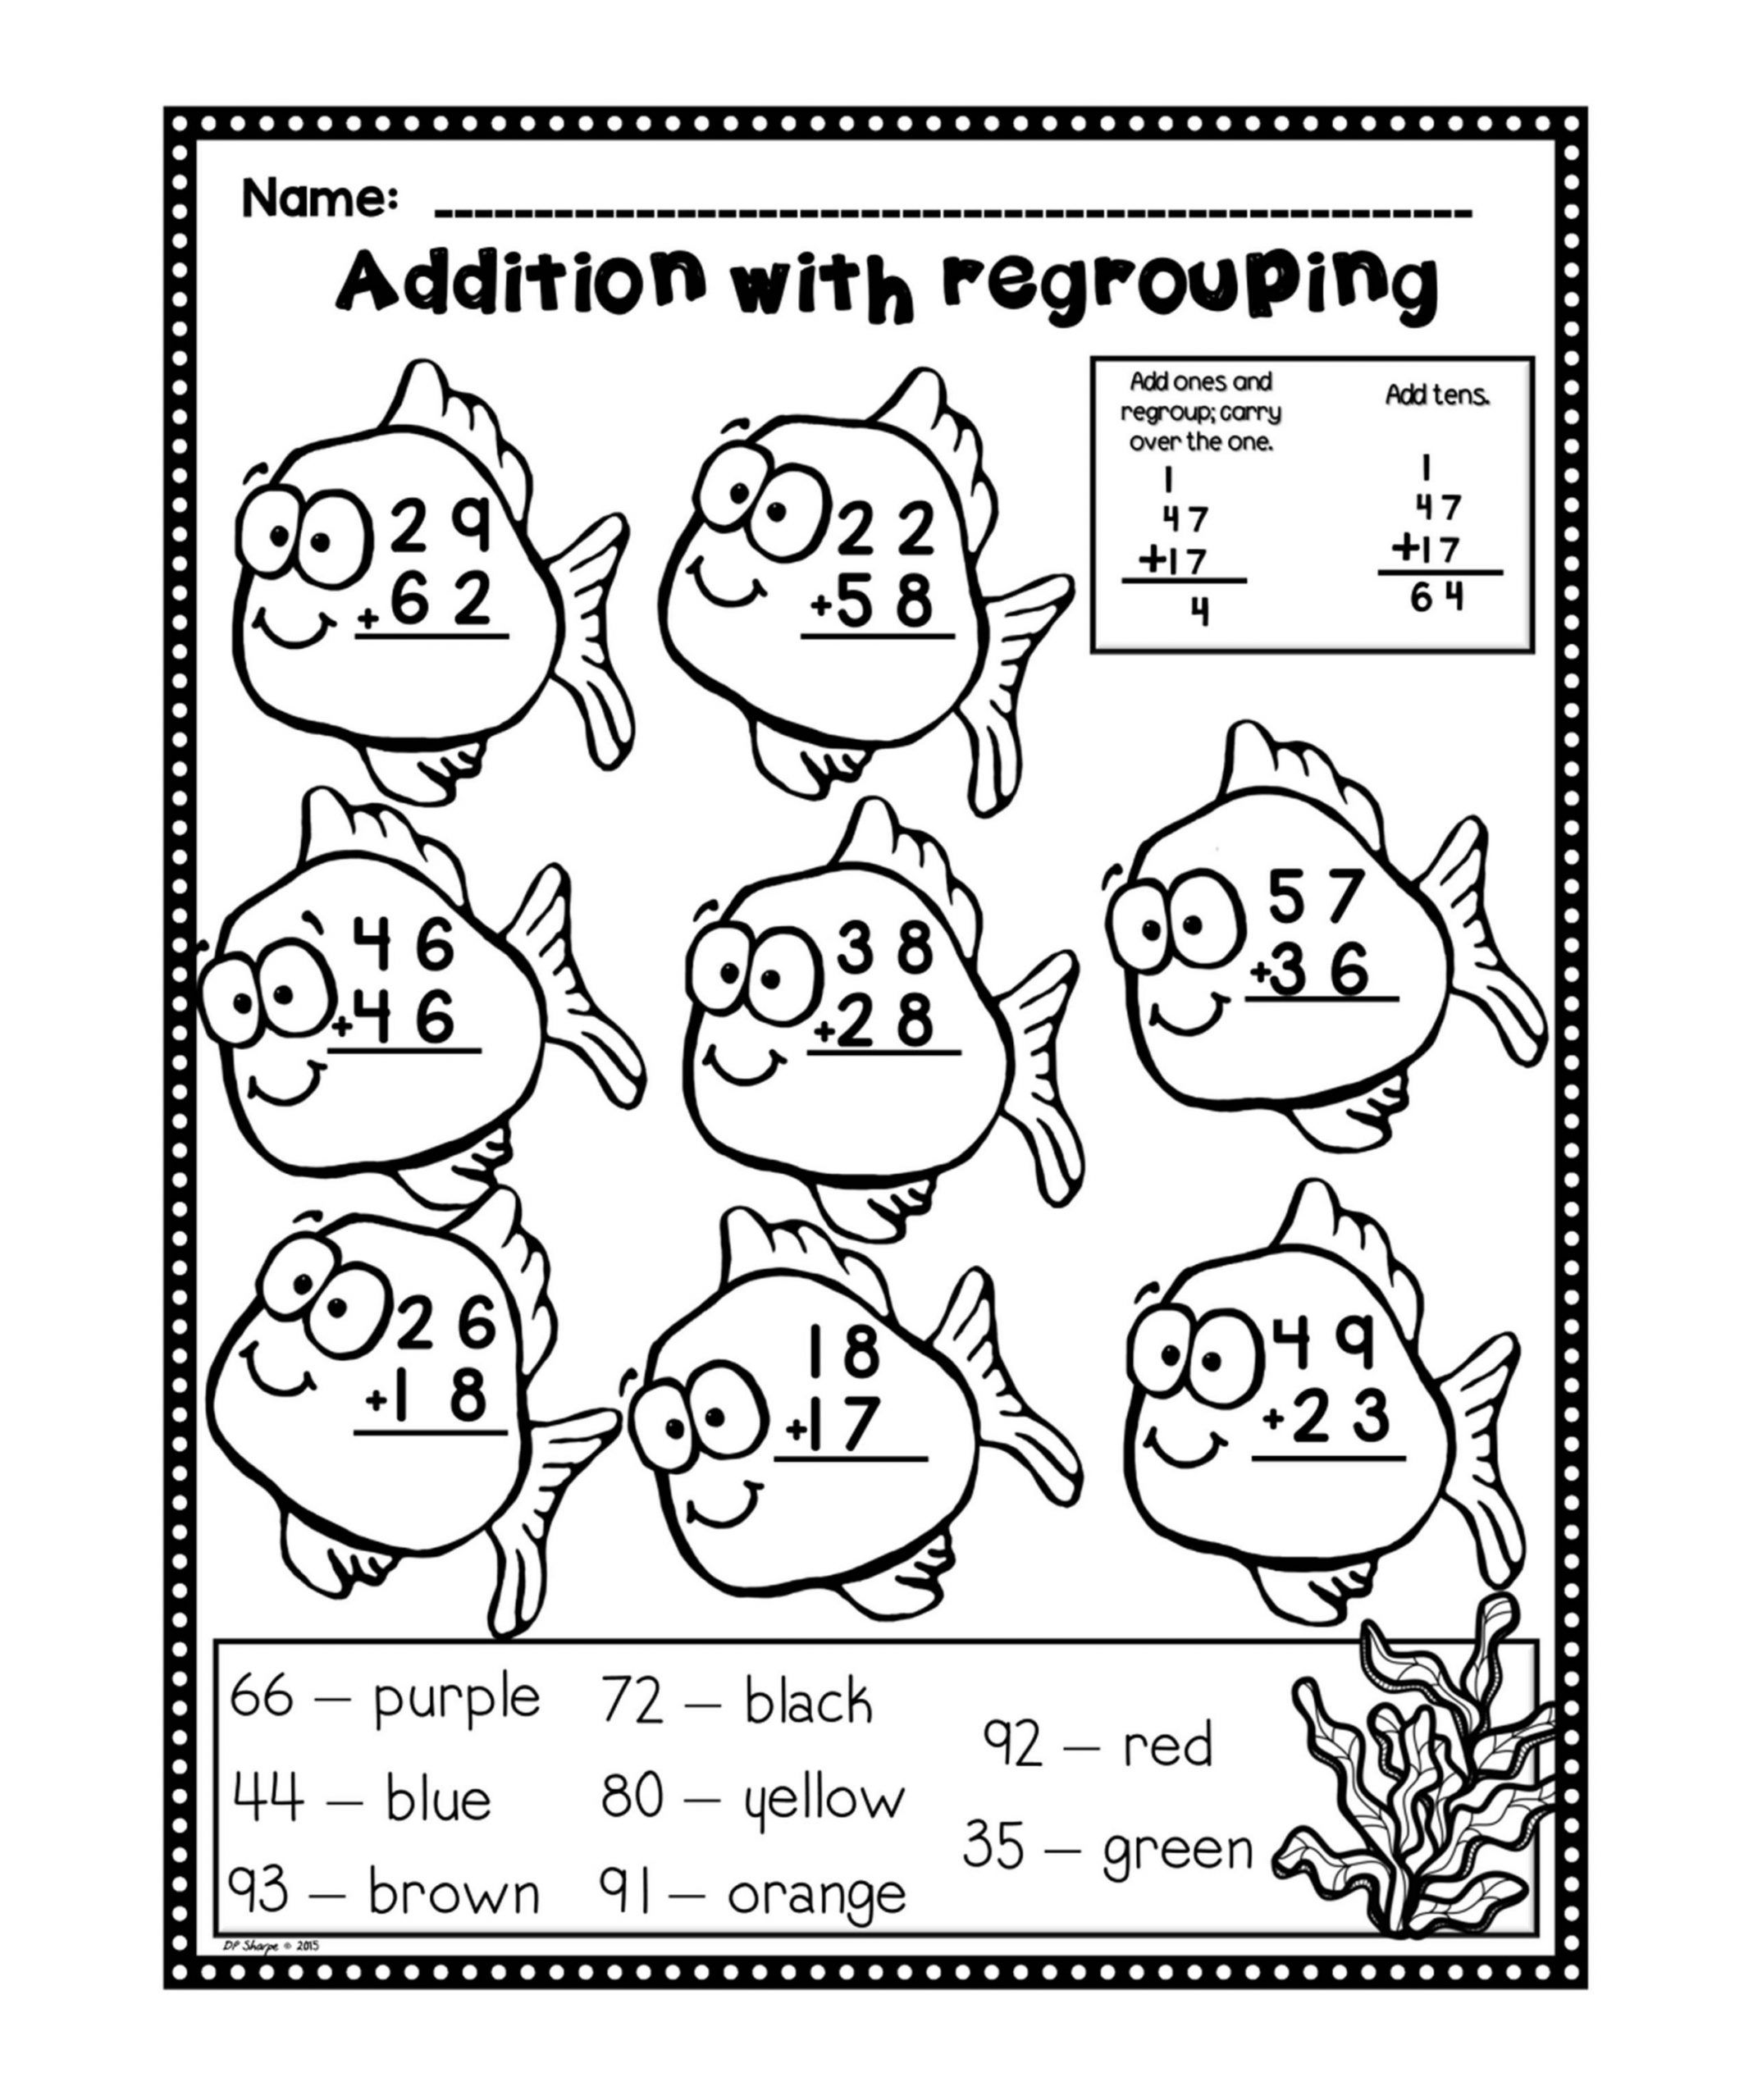 Worksheets For Fun Printable Addition With Regrouping Worksheets Kindergarten Addition Worksheets Color Worksheets Digit addition with regrouping song